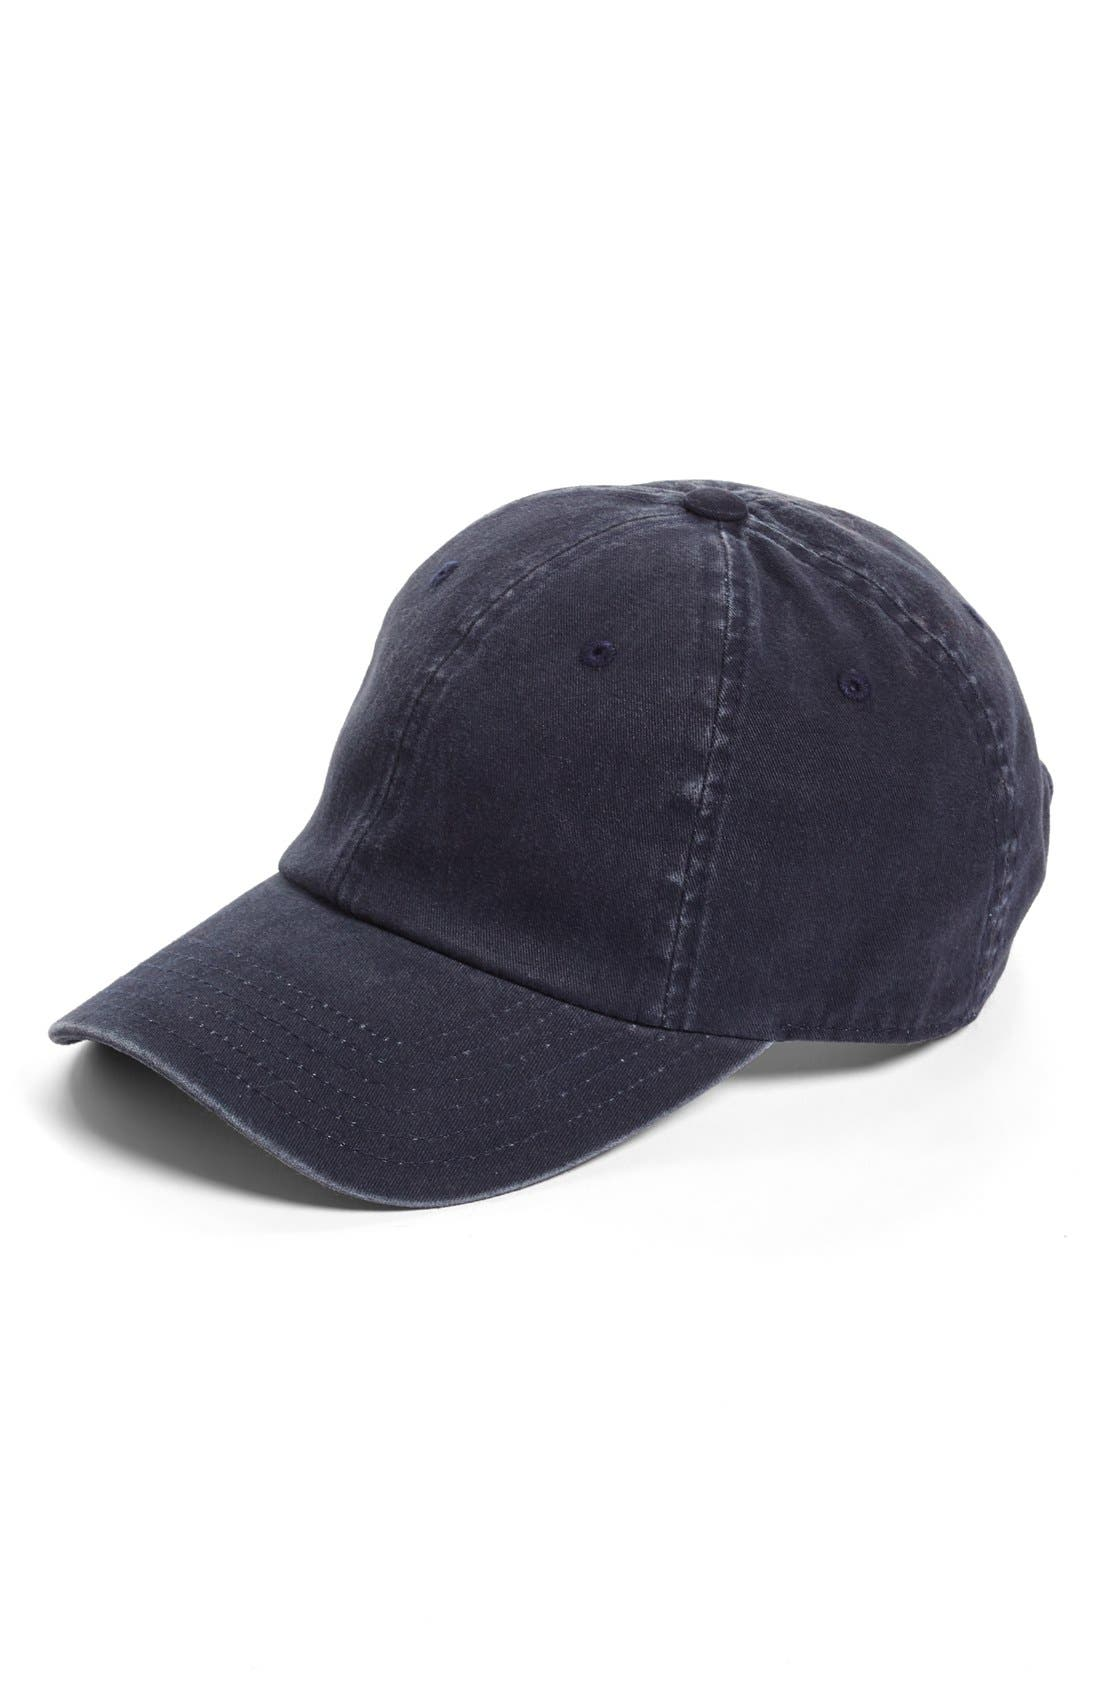 Alternate Image 1 Selected - American Needle Washed Baseball Cap